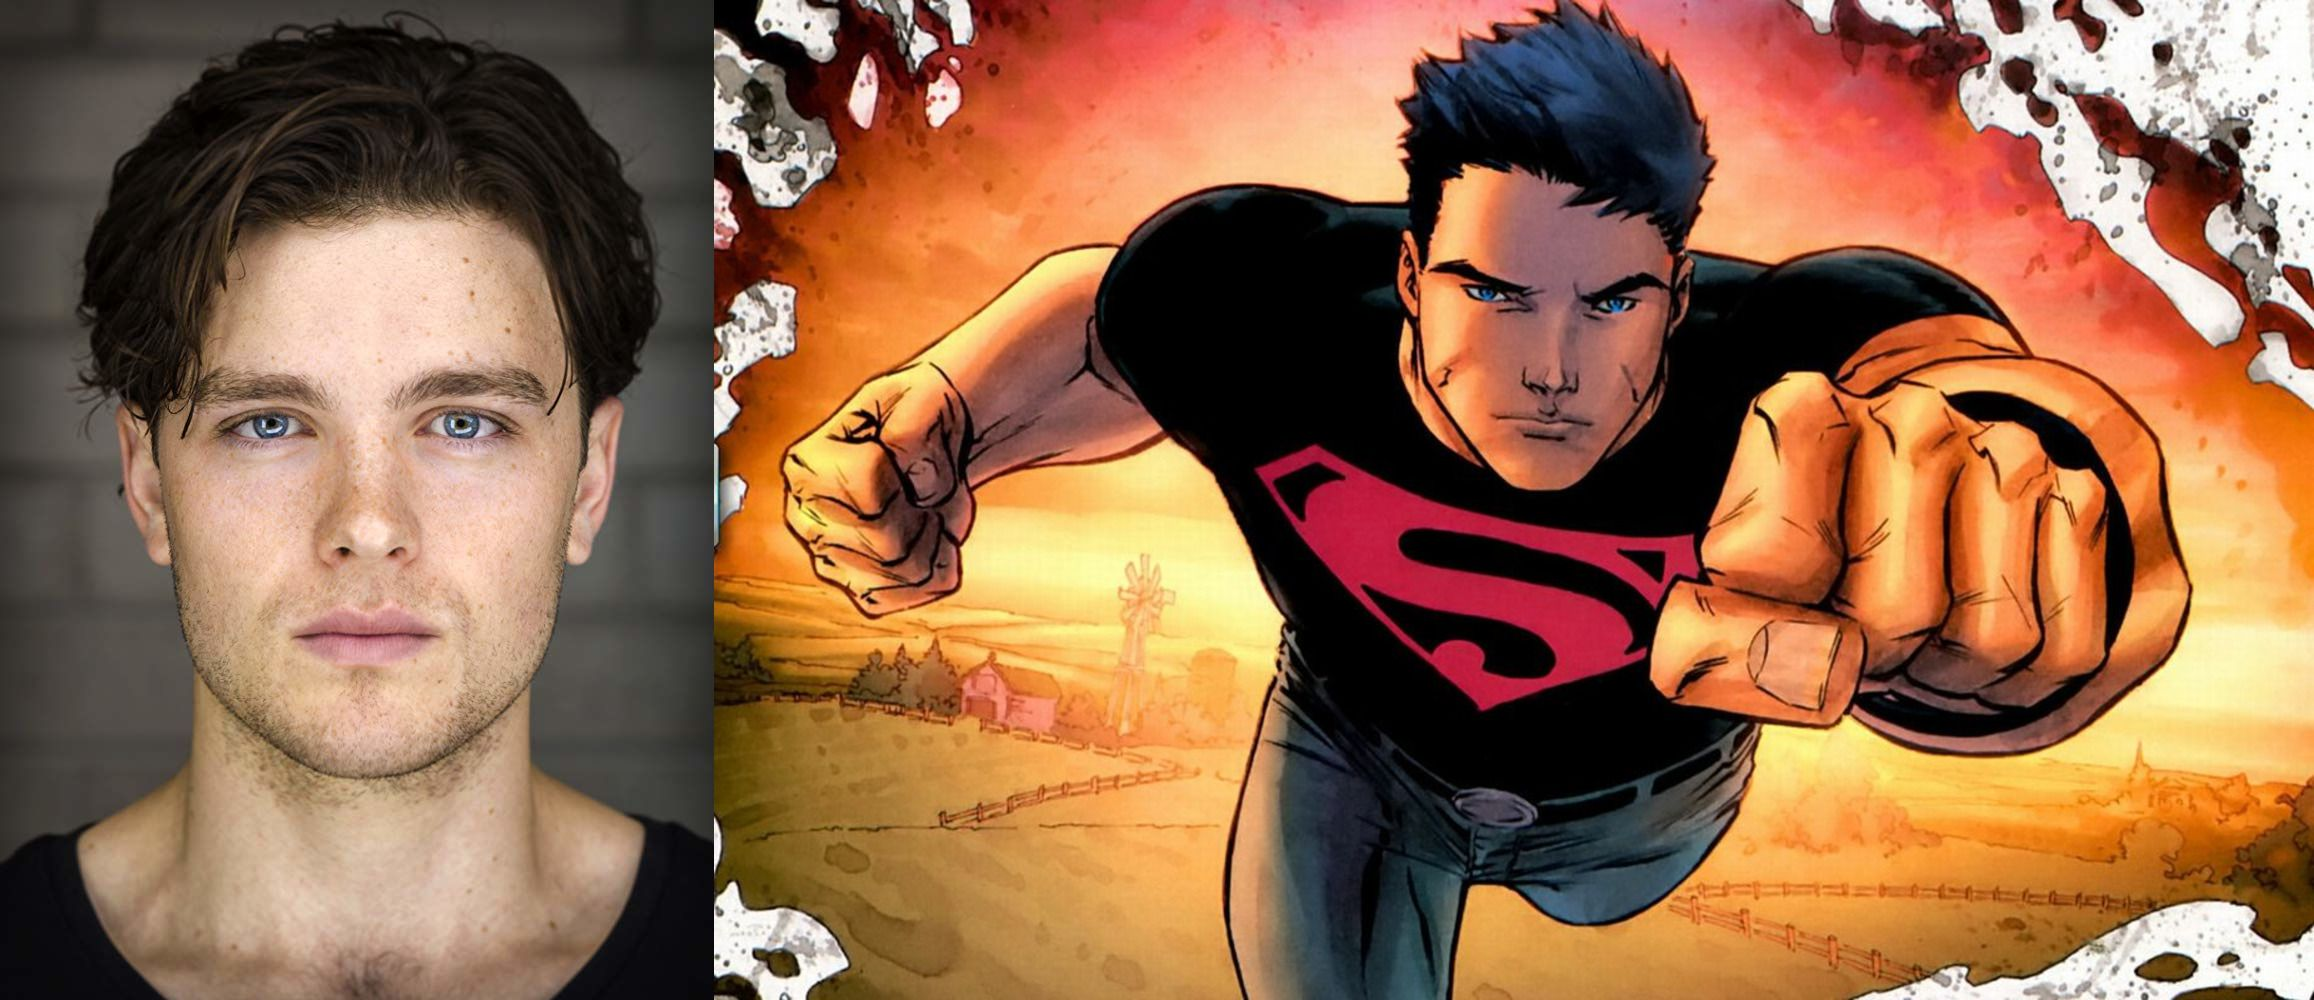 Superboy Cast For Season 2 Of Titans Superman Homepage Conner kent is coming to @dcutitans. superboy cast for season 2 of titans